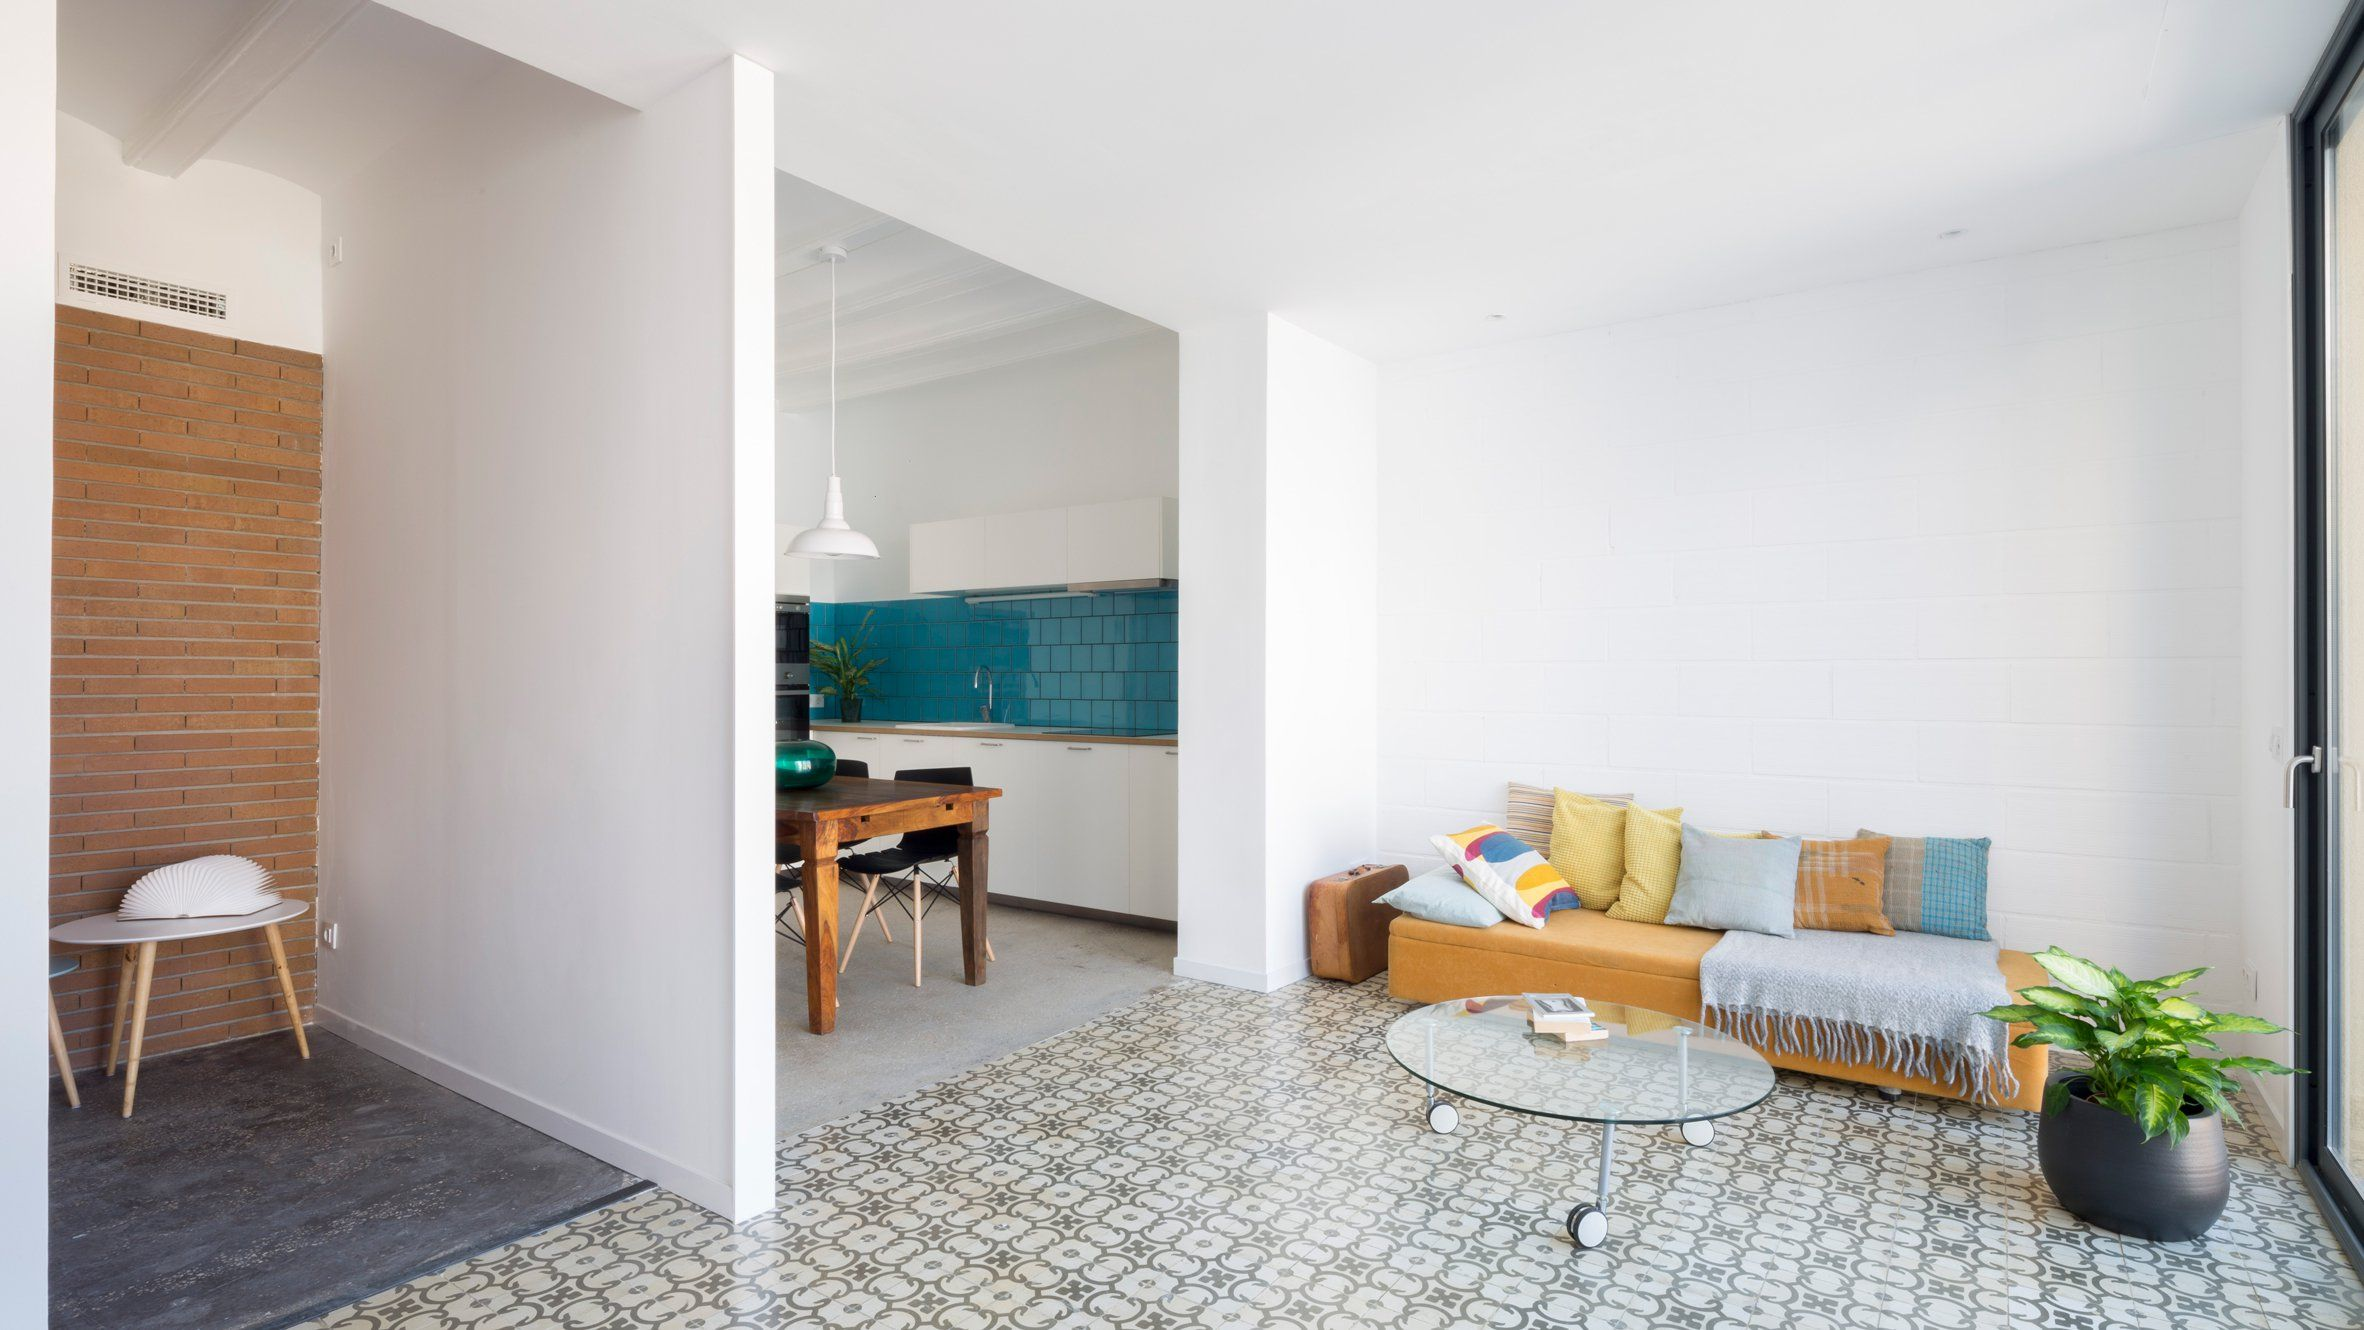 Nook Architects has converted a Barcelona block into a bed and